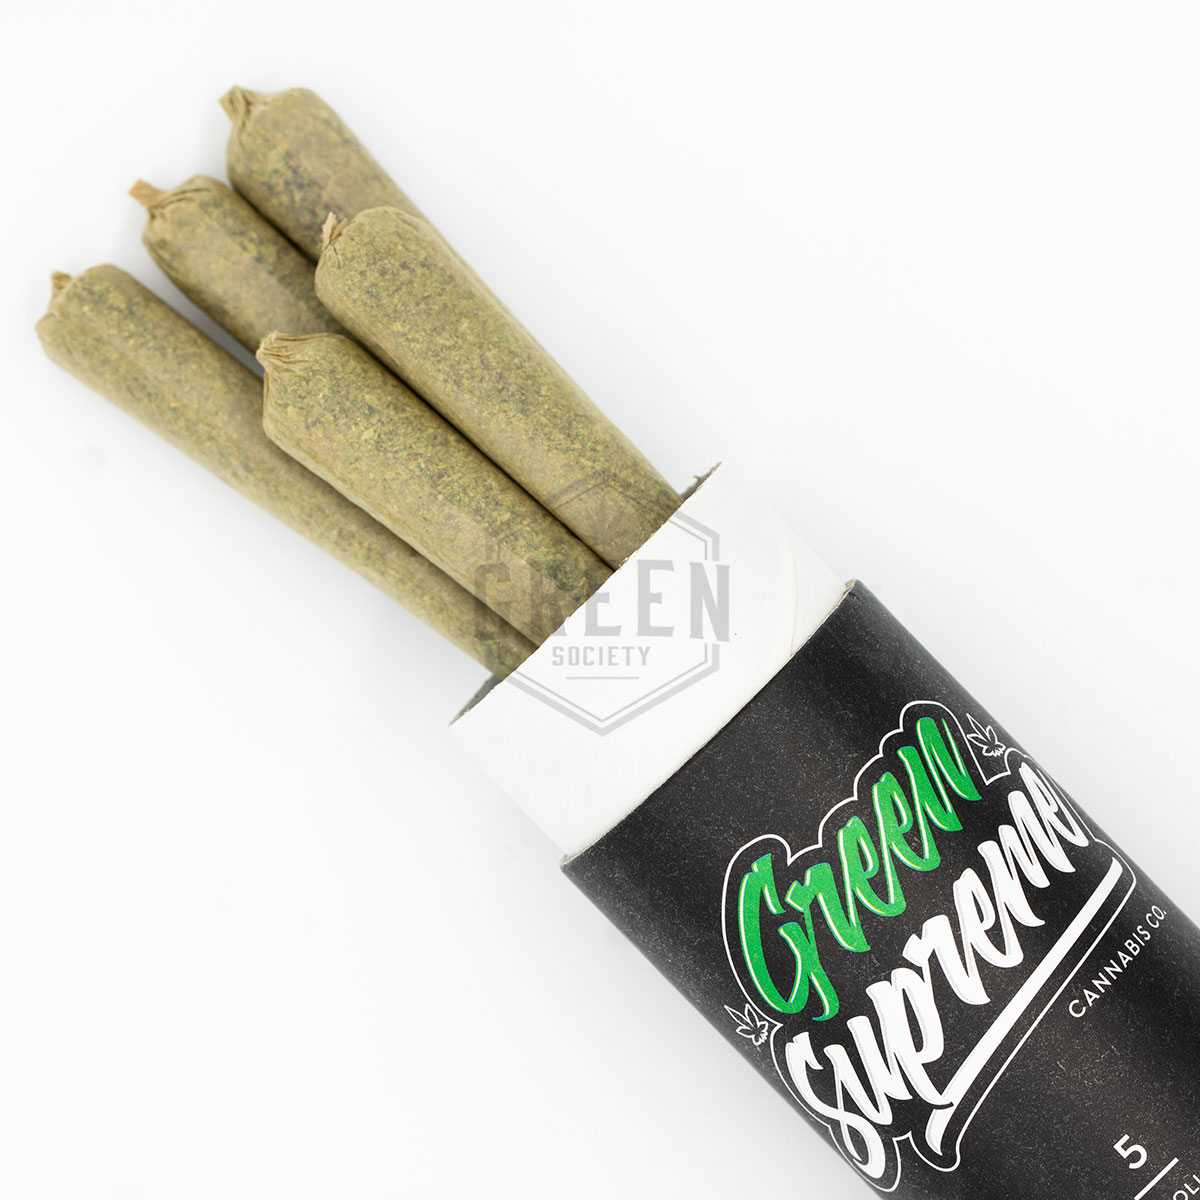 Green Supreme Premium Pre-Rolled Joints by Green Society - Image © 2018 Green Society. All Rights Reserved.